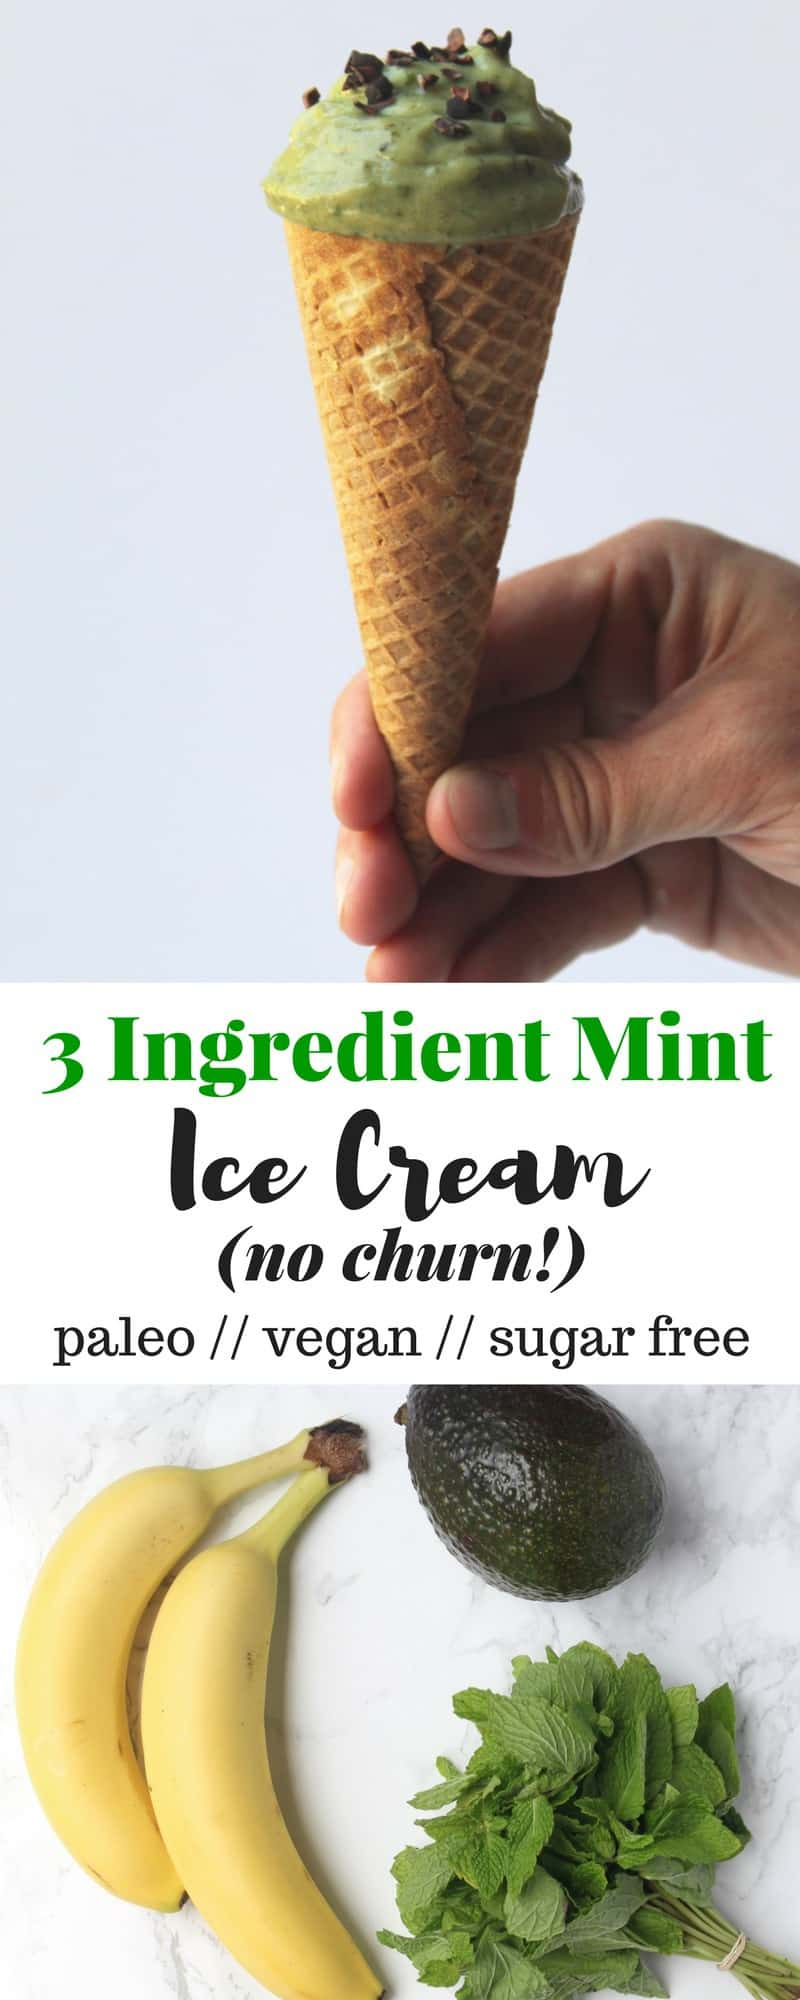 Just 3 healthy ingredients make up this Mint Ice Cream that is doesn't require an ice cream maker and can be made in under 5 minutes! Vegan, paleo, and gluten free - Eat the Gains